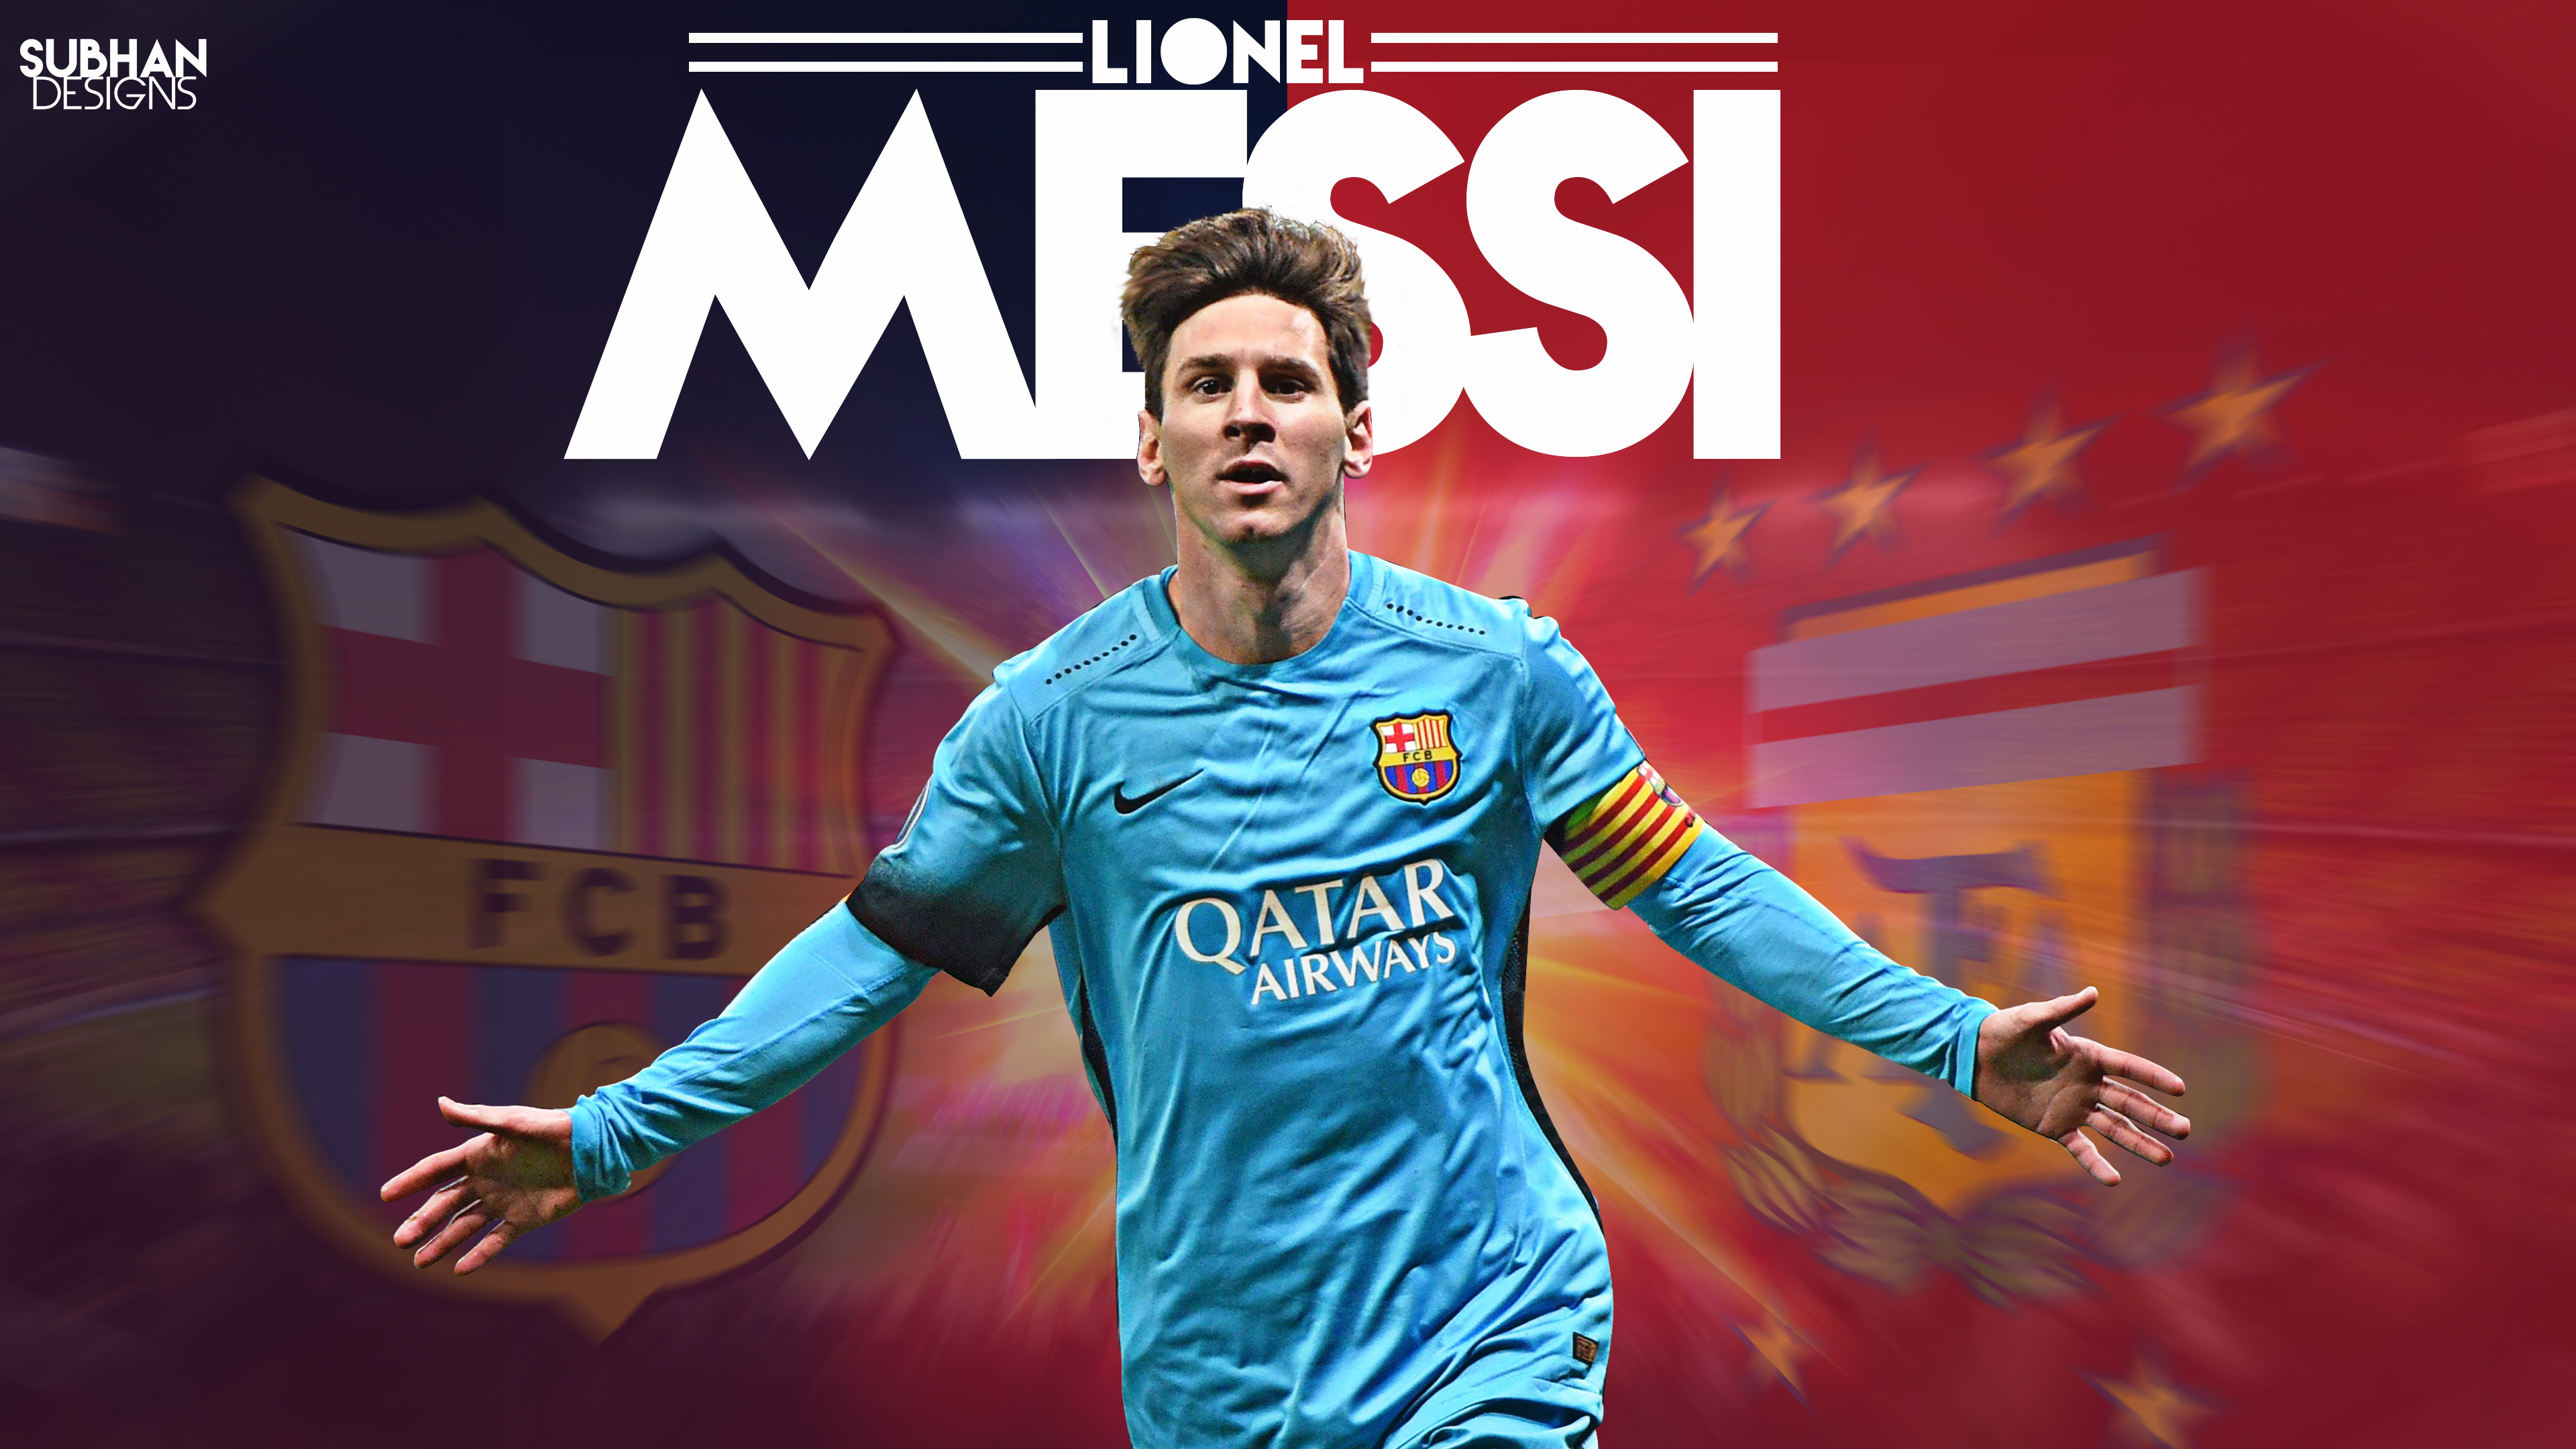 download Lionel Messi 2016 wallpaper 4K by subhan22 3840x2160